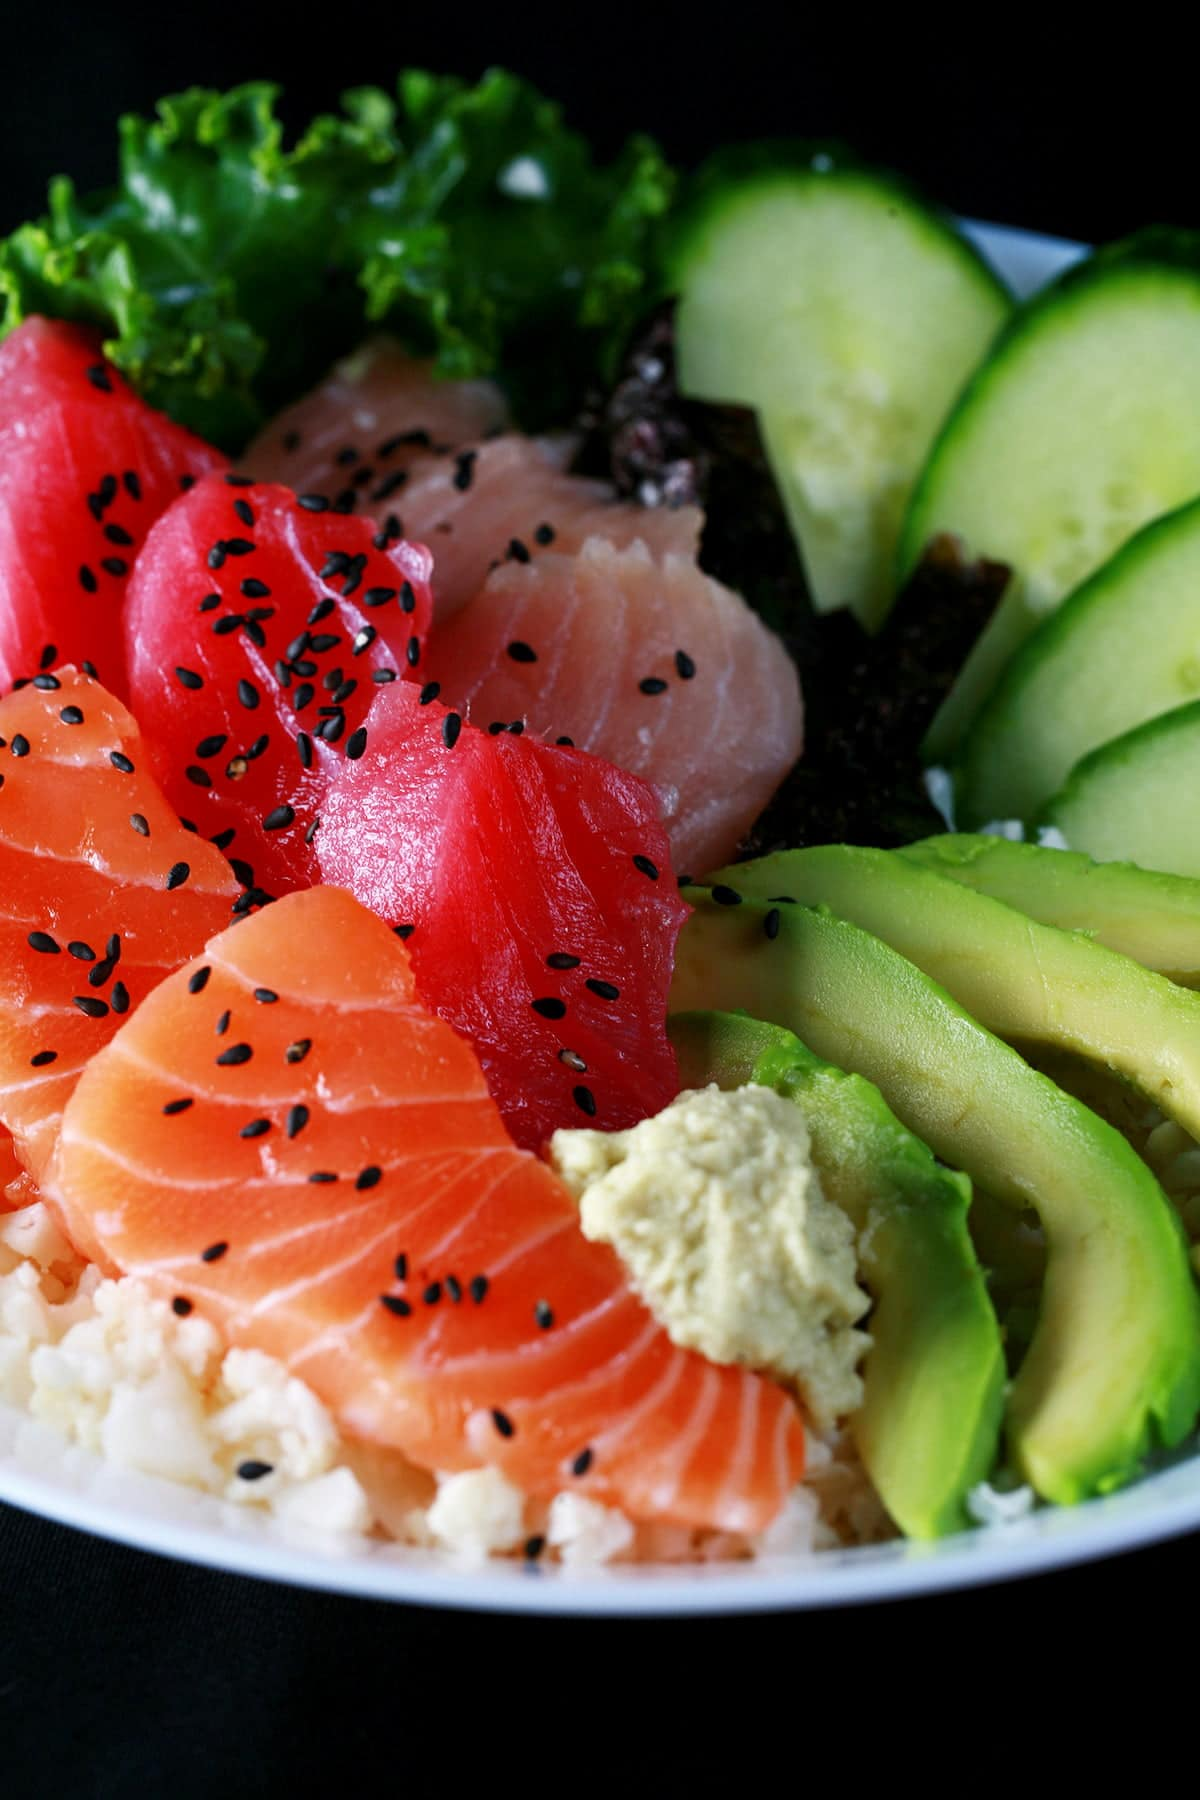 A low carb chirashi bowl - A shallow bowl with various cuts of fish - salmon, tuna, and snapper - as well as some veggies.  It is all arranged on top of riced cauliflower.